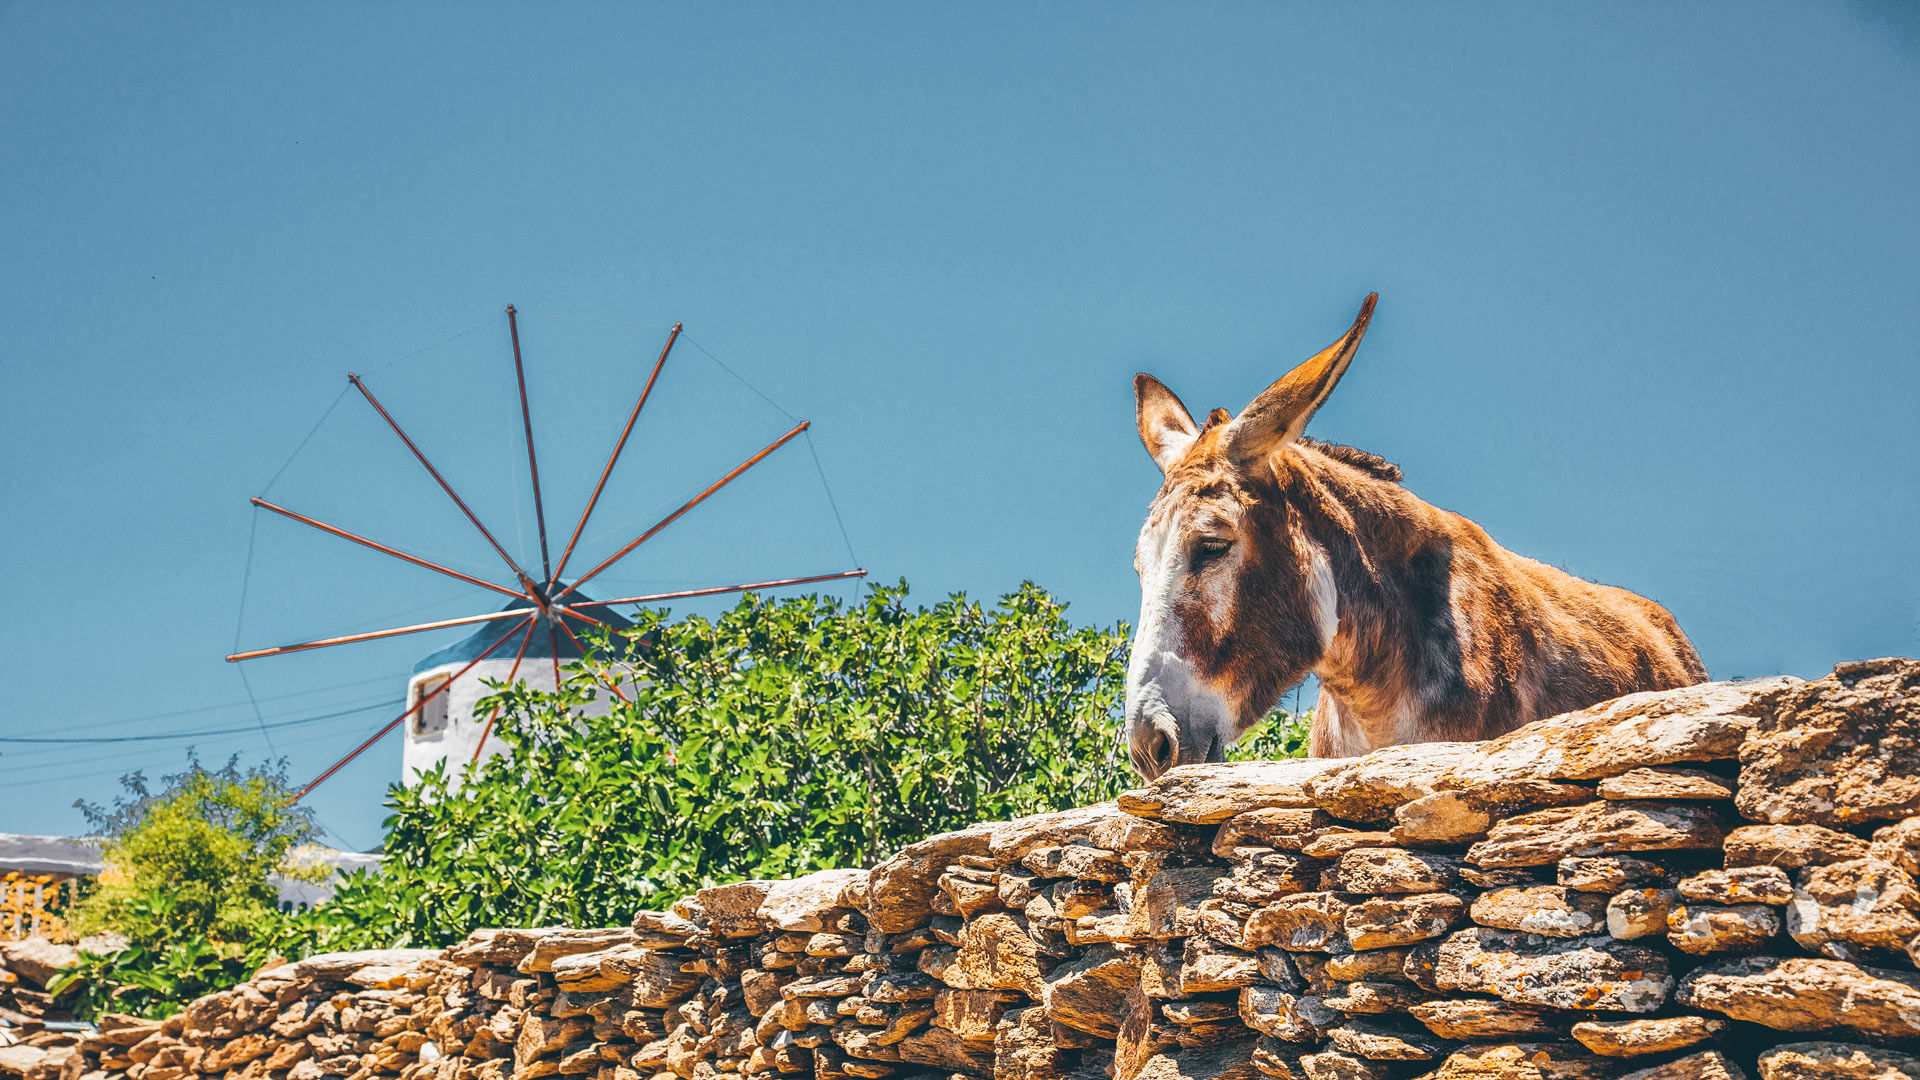 Cute donkey posing near Sifnos windmill that dates back to the mid 18th century, close to Artemonas village